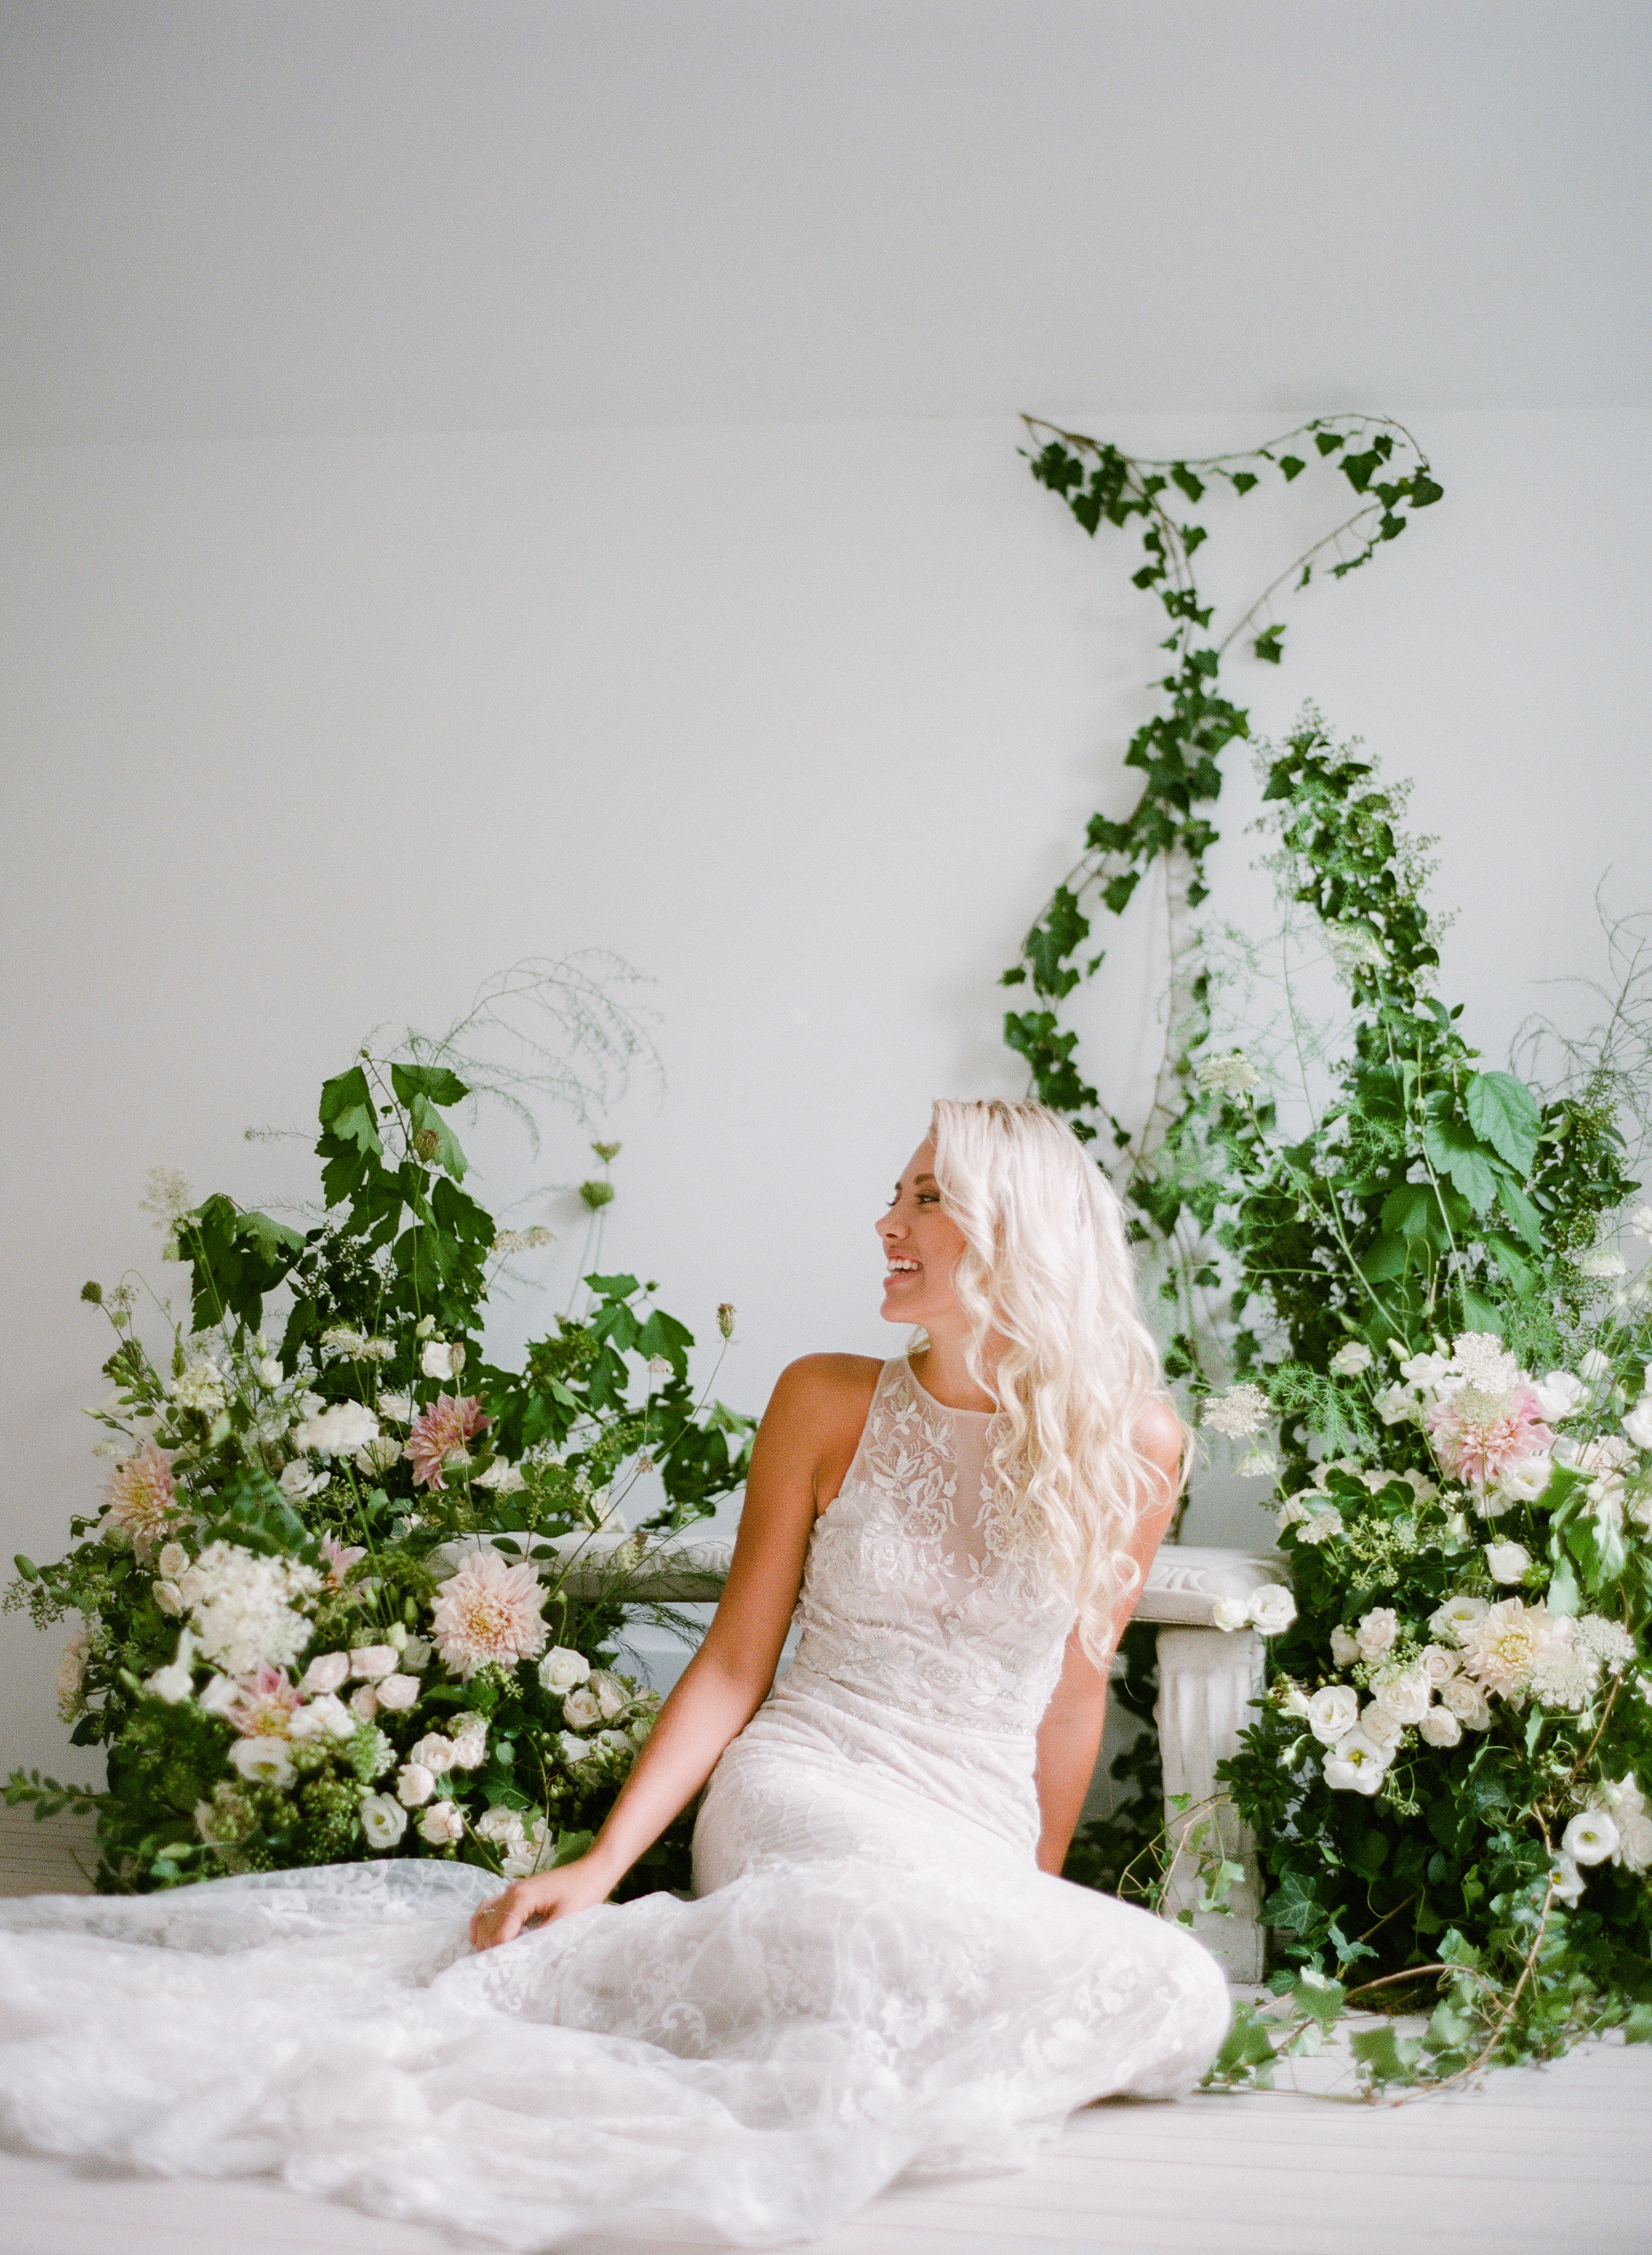 we are so full of wonder for the natural world. - Invoking the spirit of such raw beauty is what we strive for. This unique outlook defines our thoughtful approach to design. And our use of textural elements awakens even the most traditional of flowers.